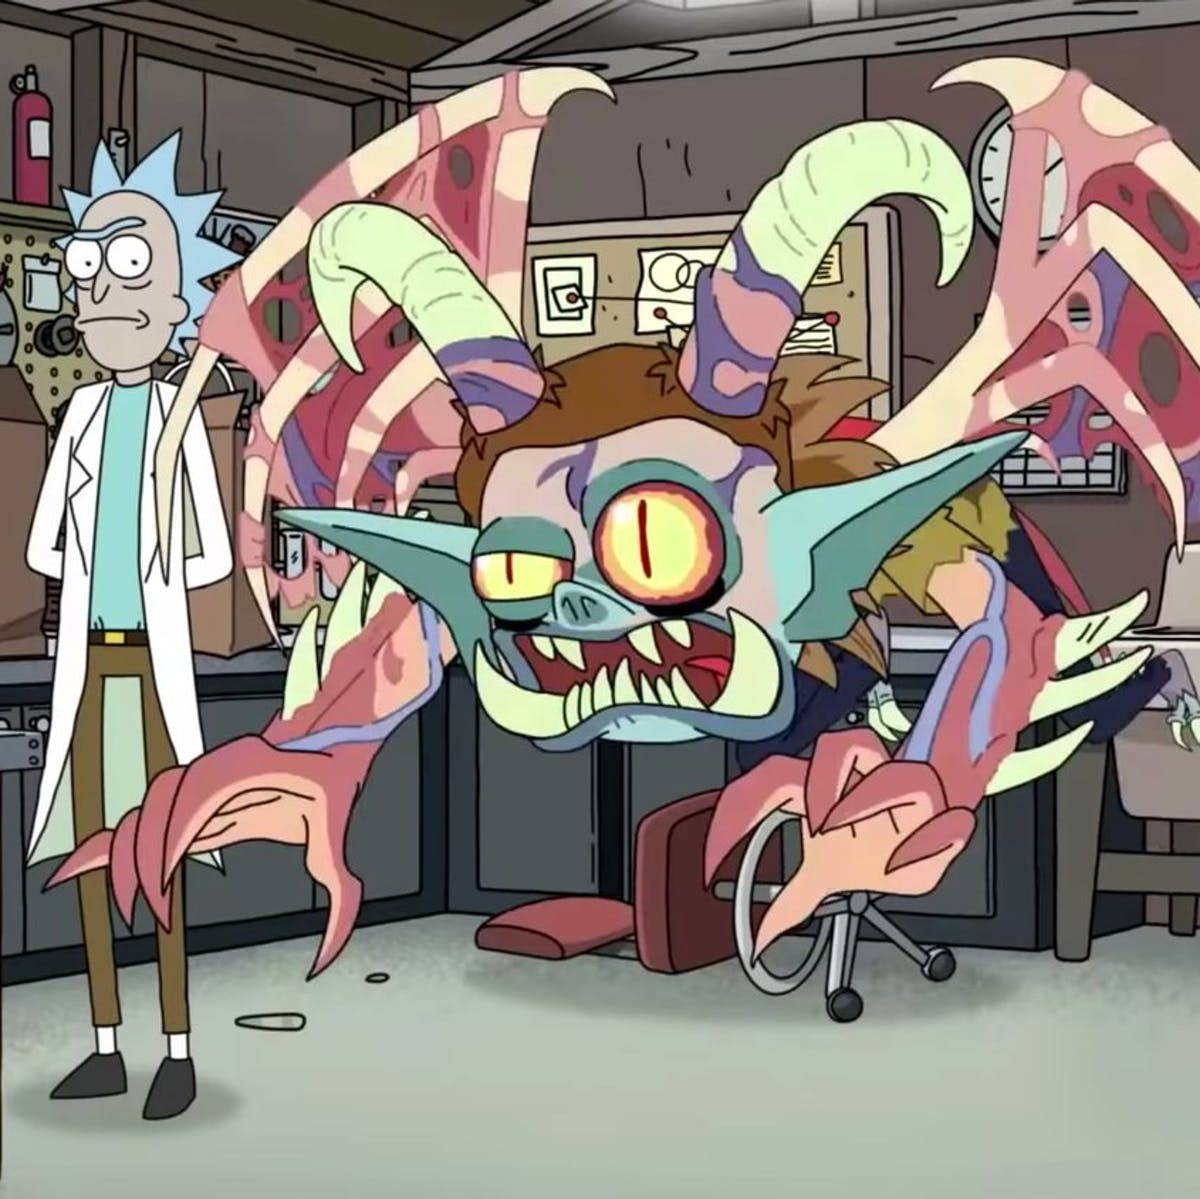 rick and morty season 4 episode 2 - photo #35